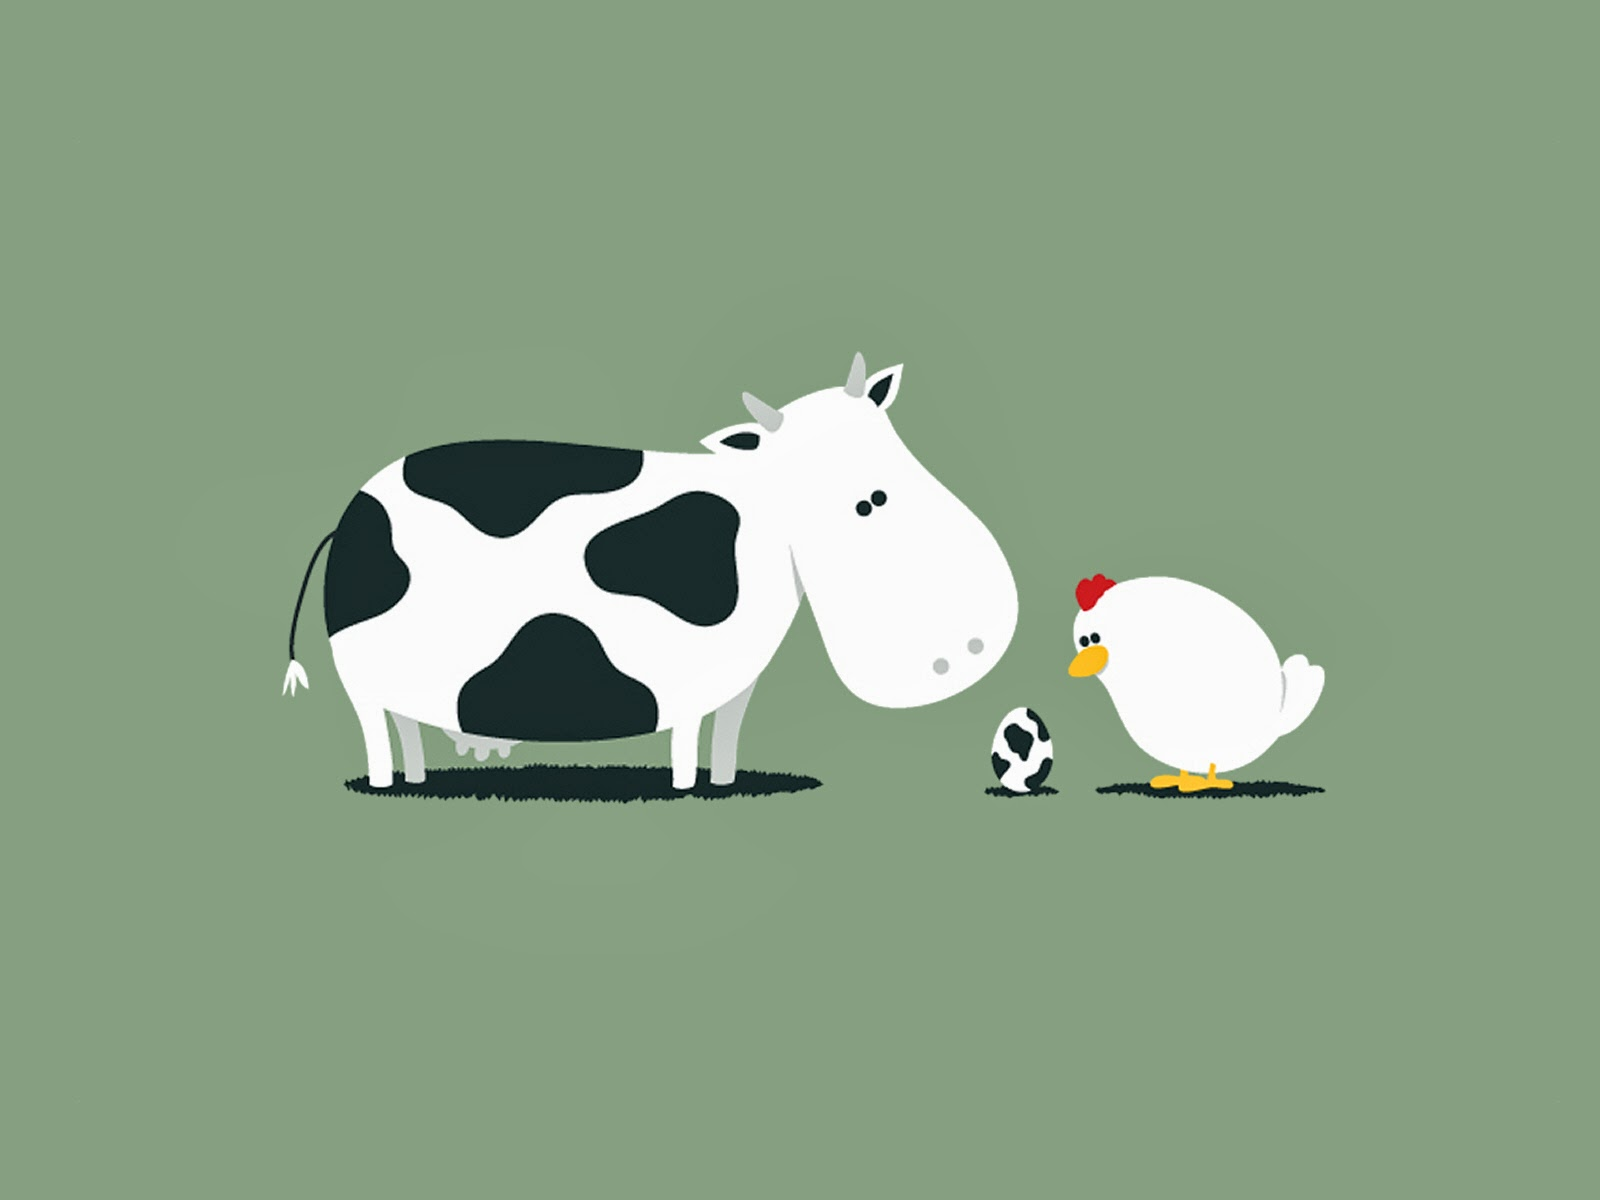 cow-and-hen-laid-egg-confusion-funny-humor-picture.jpg